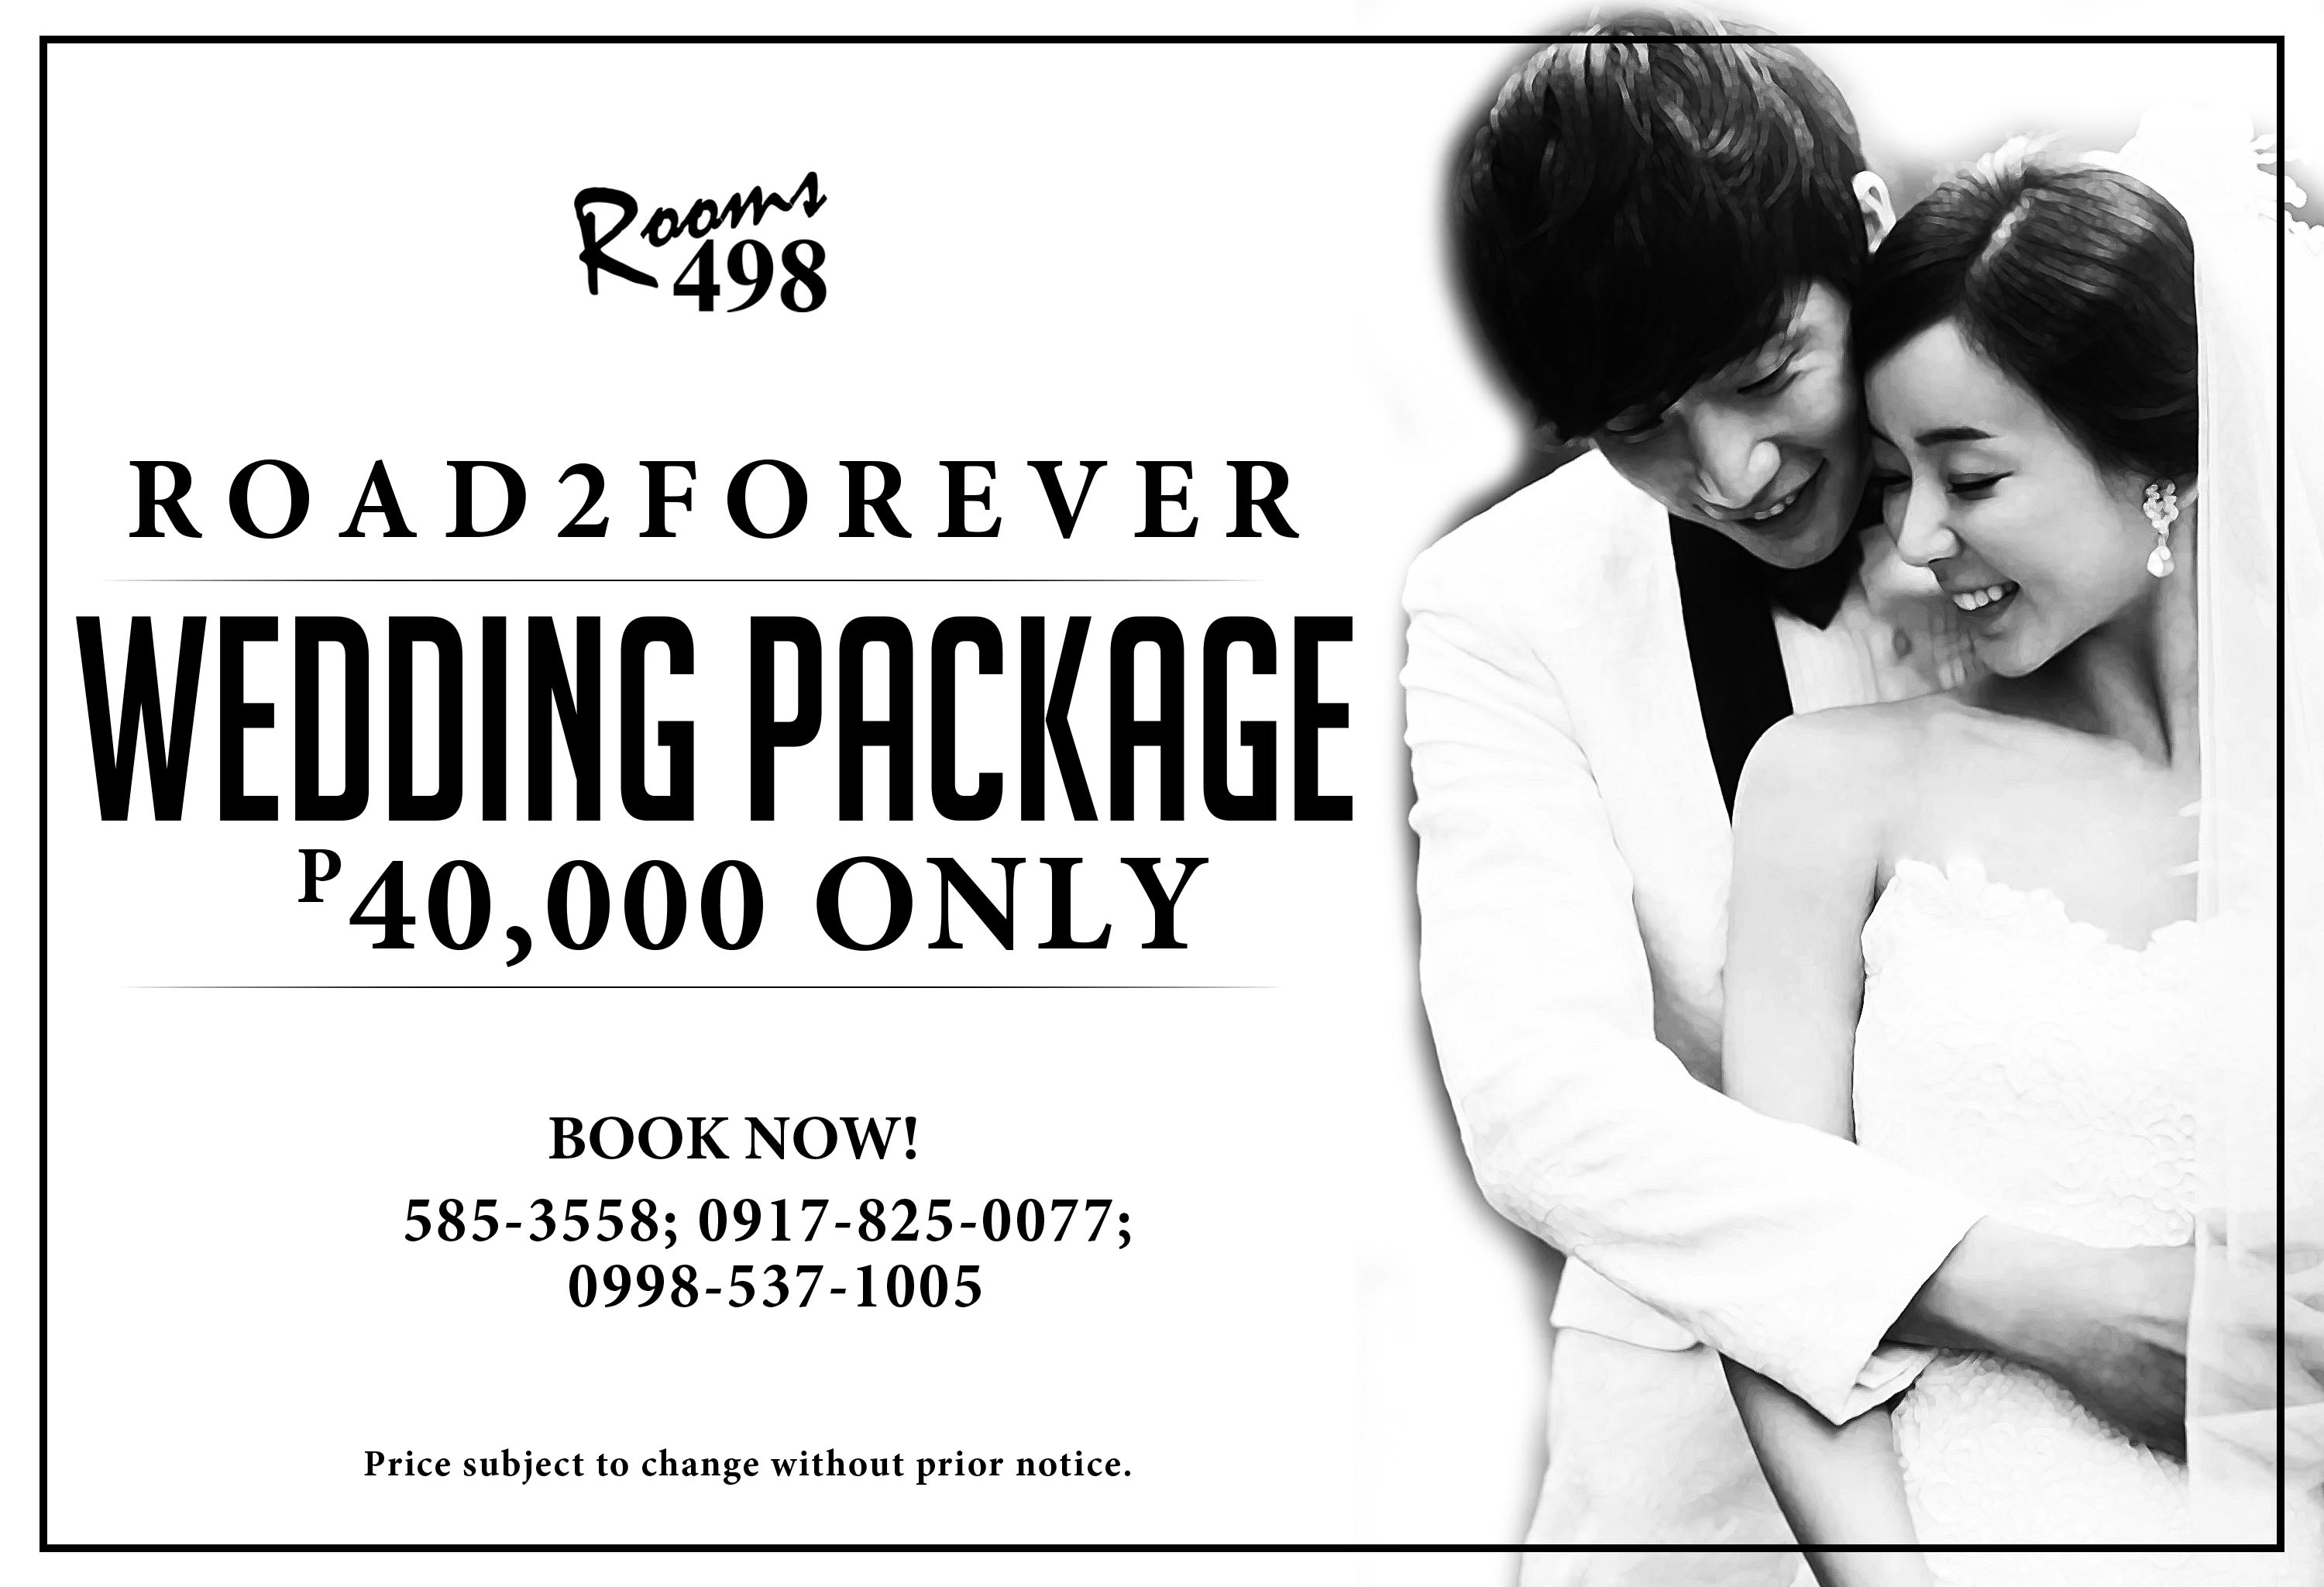 www.rooms498.com Affordable all in Wedding Package.